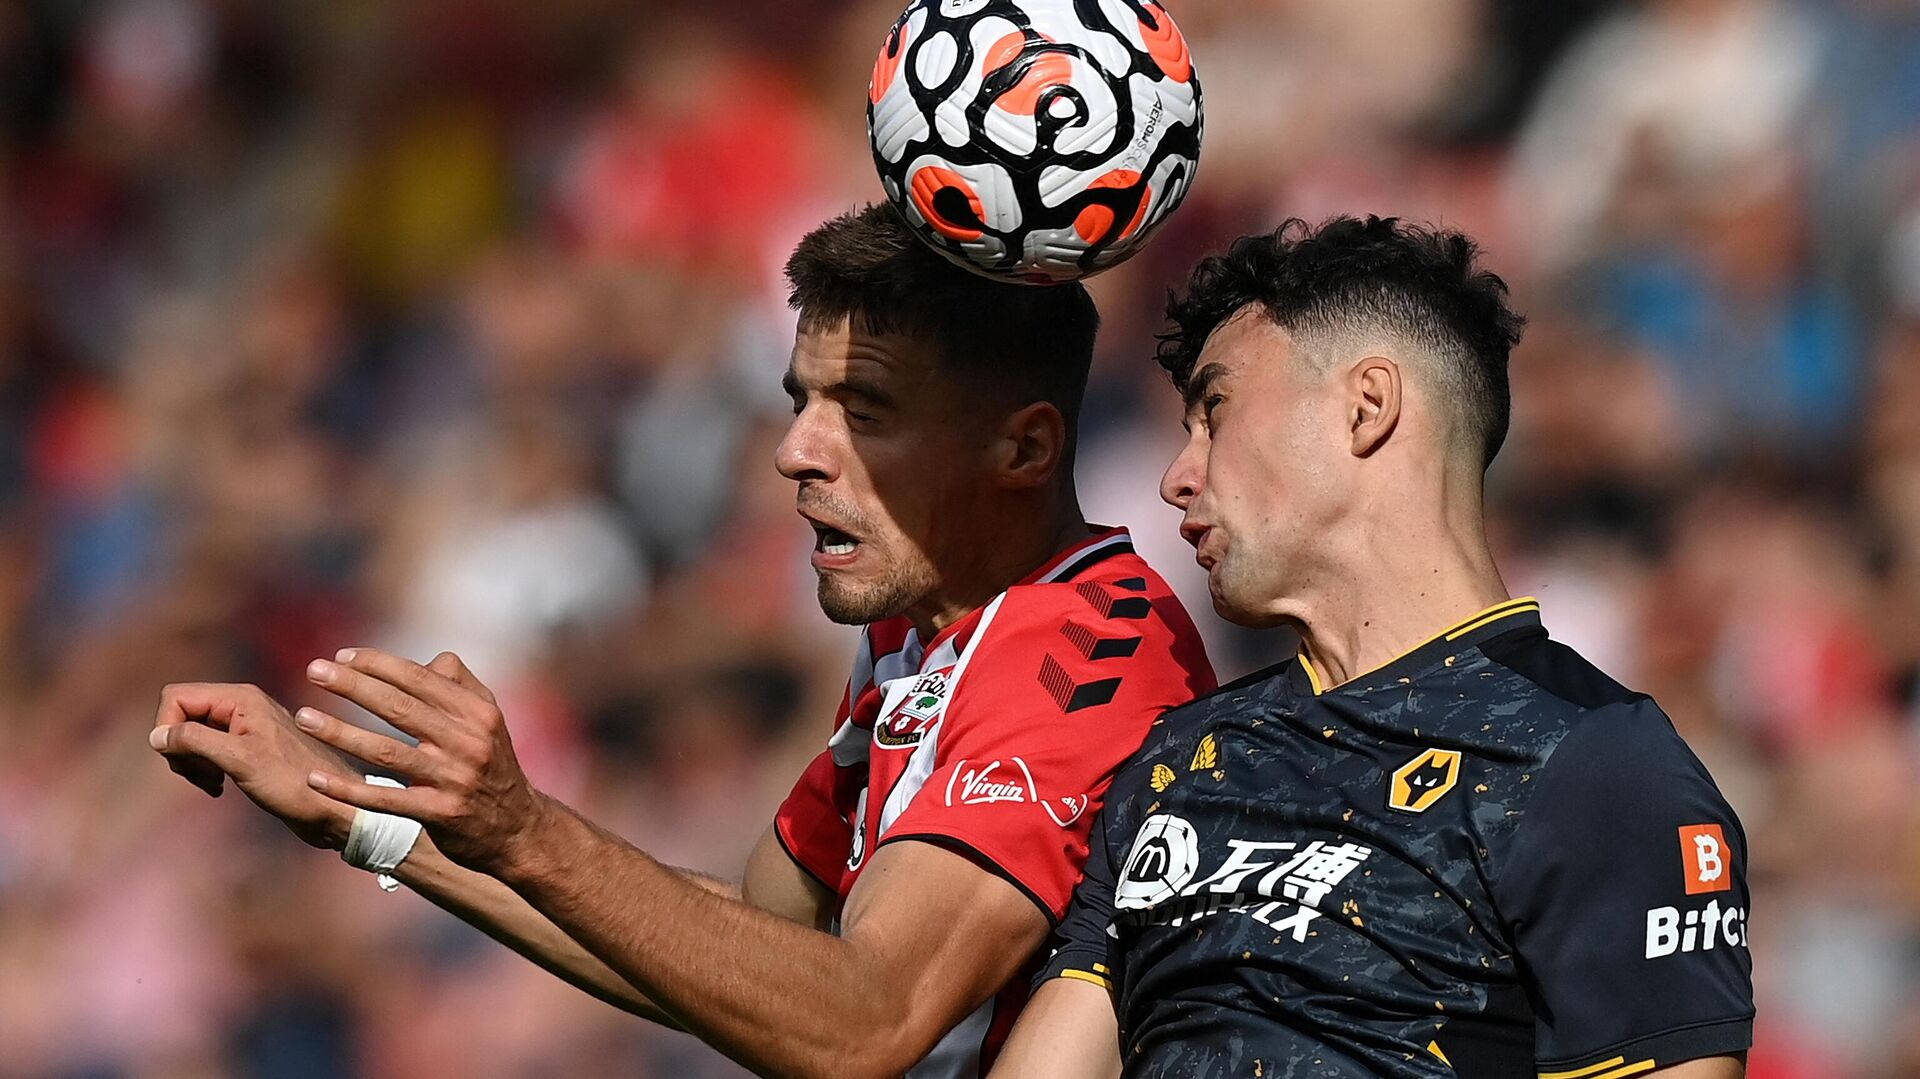 Southampton's Polish defender Jan Bednarek (L) vies to header the ball with Wolverhampton Wanderers' English defender Max Kilman during the English Premier League football match between Southampton and Wolverhampton Wanderers at St Mary's Stadium in Southampton, southern England on September 26, 2021. (Photo by Glyn KIRK / AFP) / RESTRICTED TO EDITORIAL USE. No use with unauthorized audio, video, data, fixture lists, club/league logos or 'live' services. Online in-match use limited to 120 images. An additional 40 images may be used in extra time. No video emulation. Social media in-match use limited to 120 images. An additional 40 images may be used in extra time. No use in betting publications, games or single club/league/player publications. /  - РИА Новости, 1920, 26.09.2021